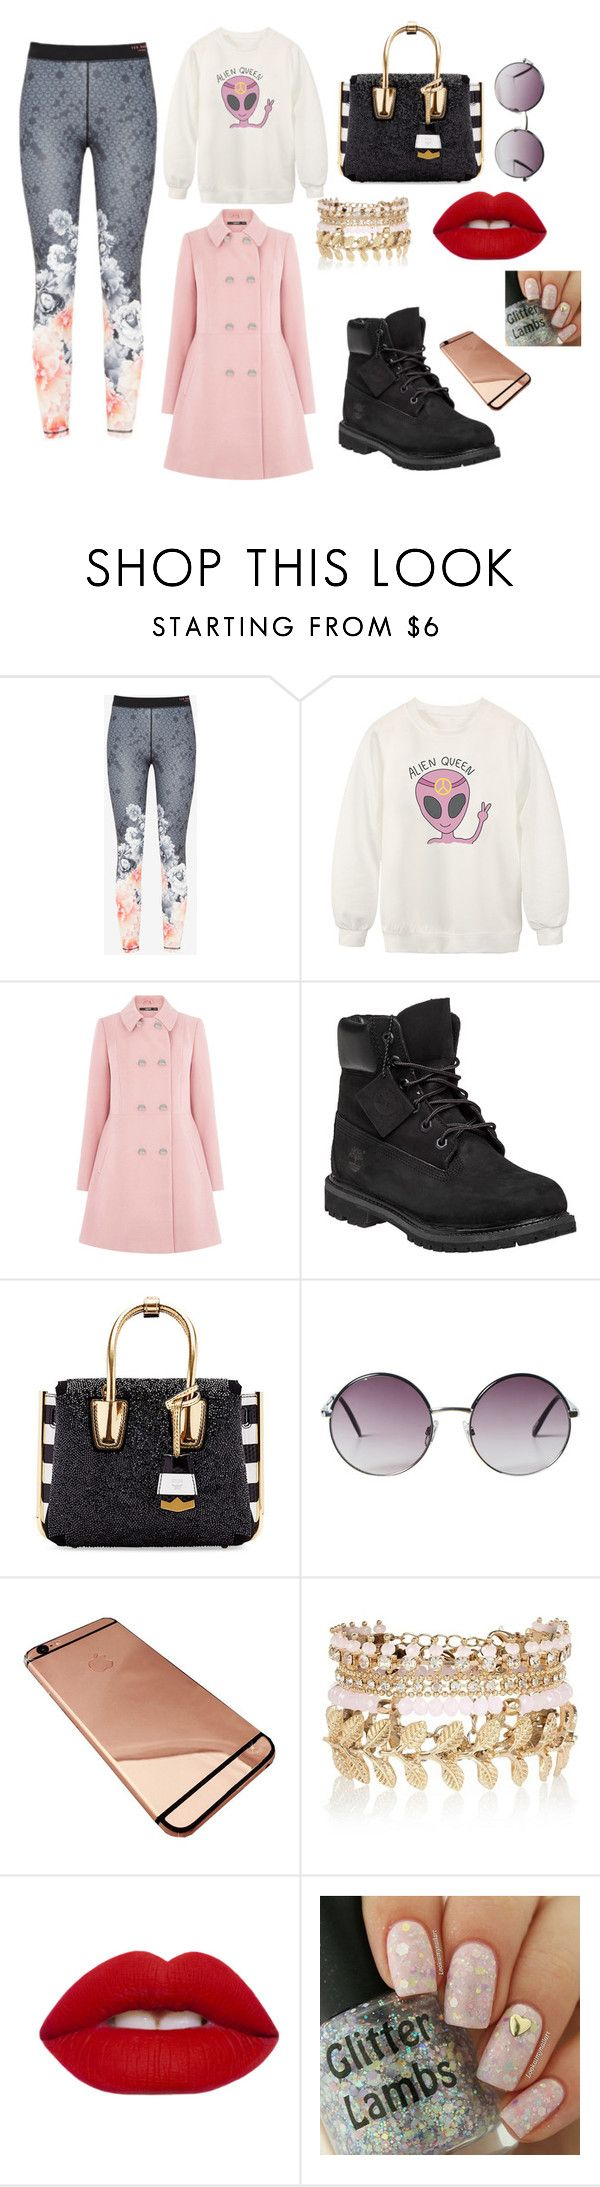 """Cloudy Day"" by red-cristal ❤ liked on Polyvore featuring Ted Baker, Chicnova Fashion, Oasis, Timberland, MCM, Monki, River Island, Lime Crime, women's clothing and women"